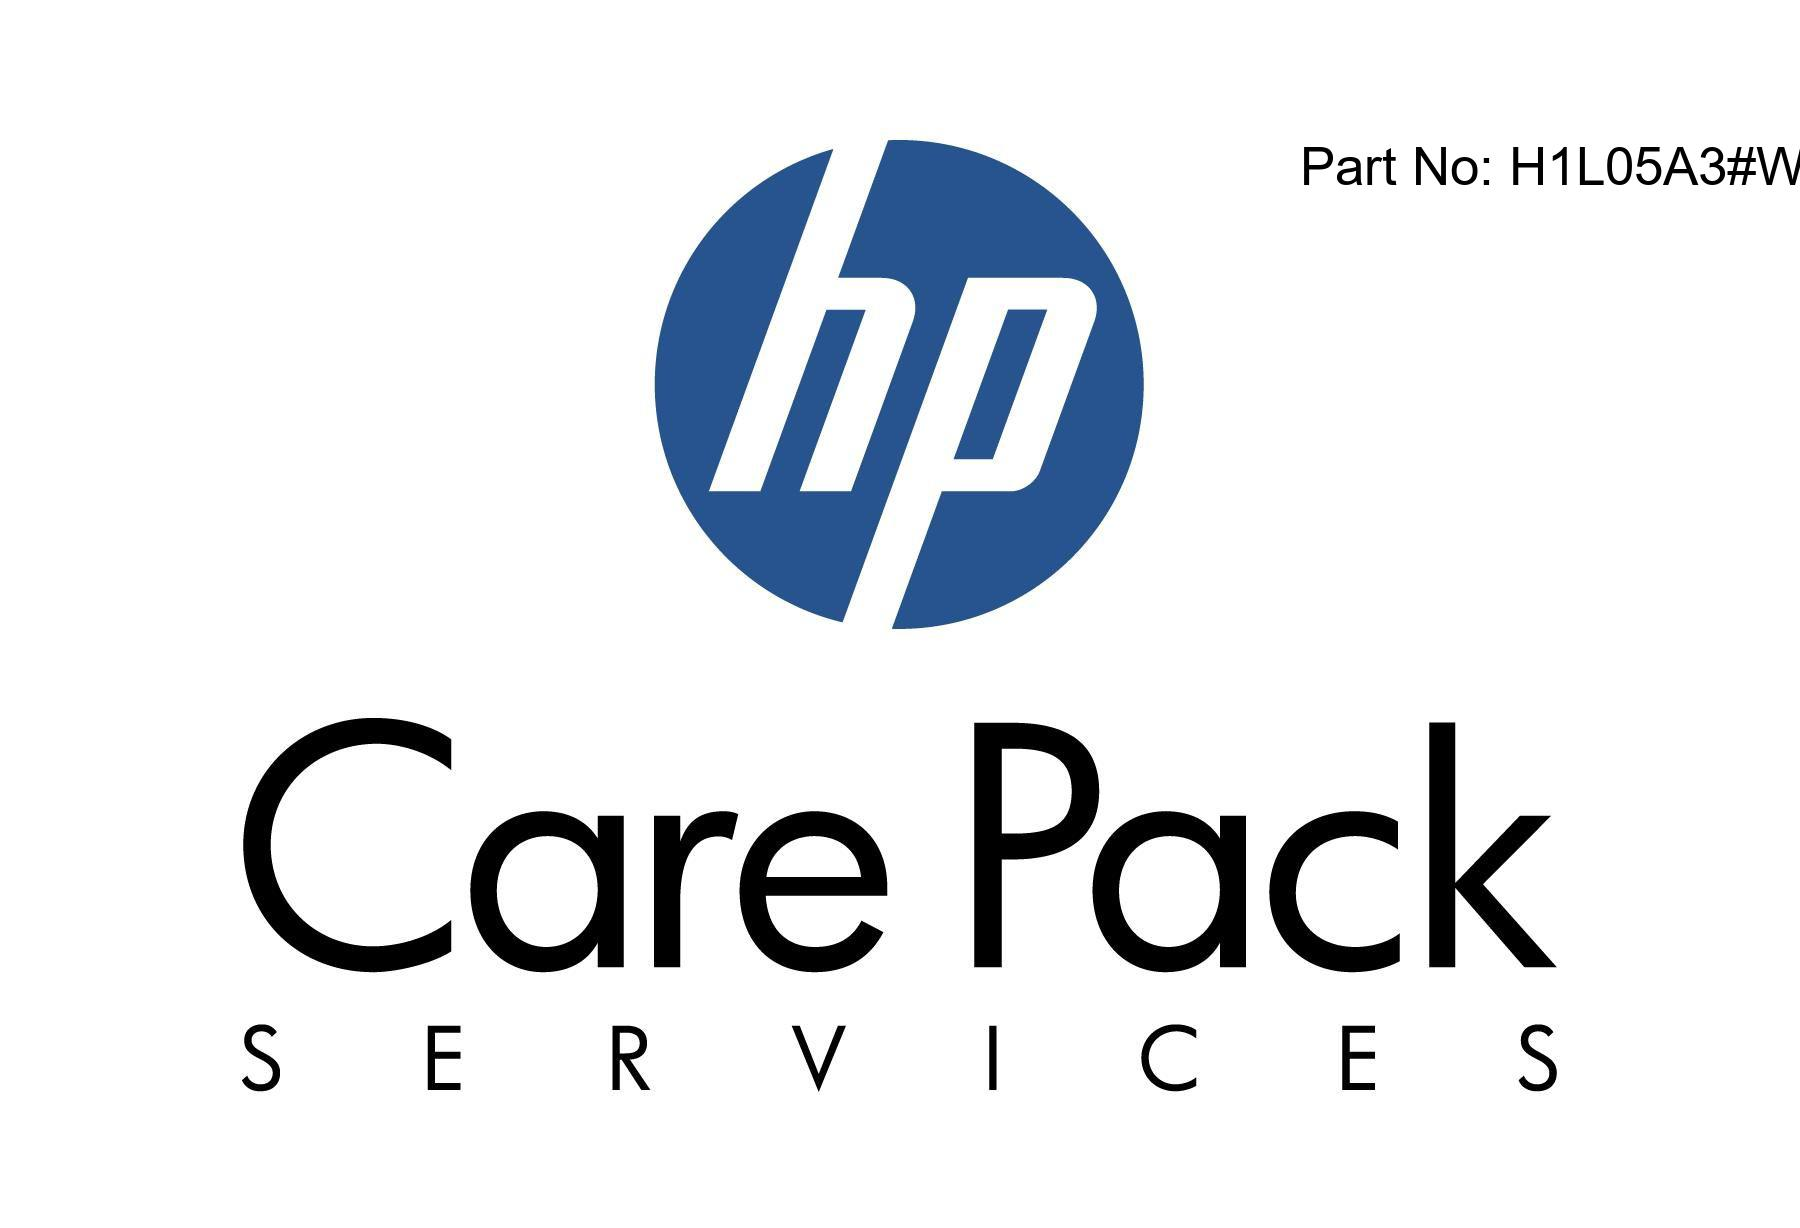 Standard ServiceONE Partner Support - Extended service agreement - advance parts replacement - 3 years - shipment - business hours - response time: 7 business days - for P/N: JH327A